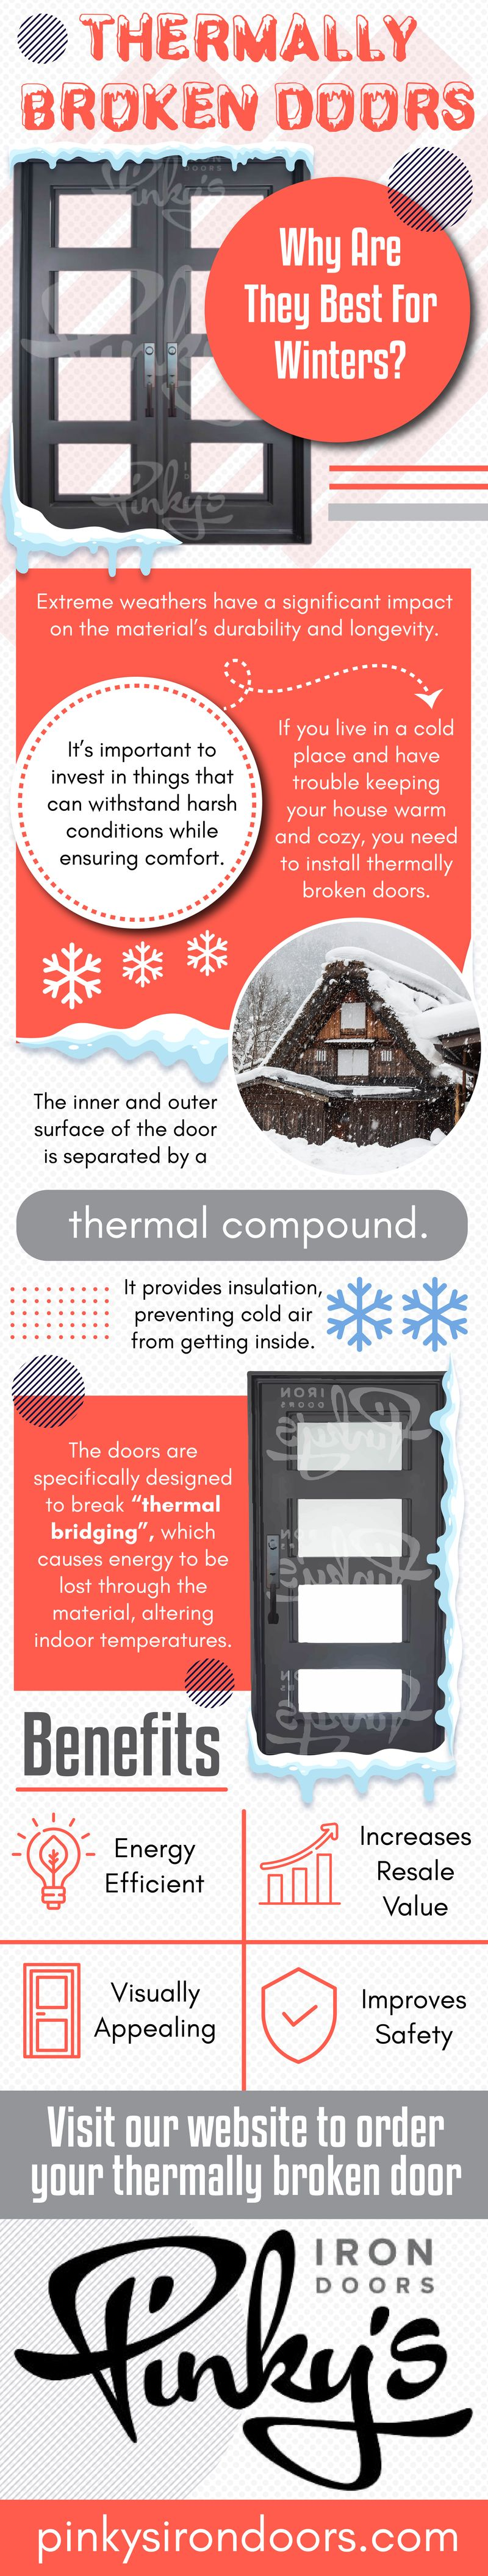 Thermally Broken Doors: Why Are They Best For Winters?